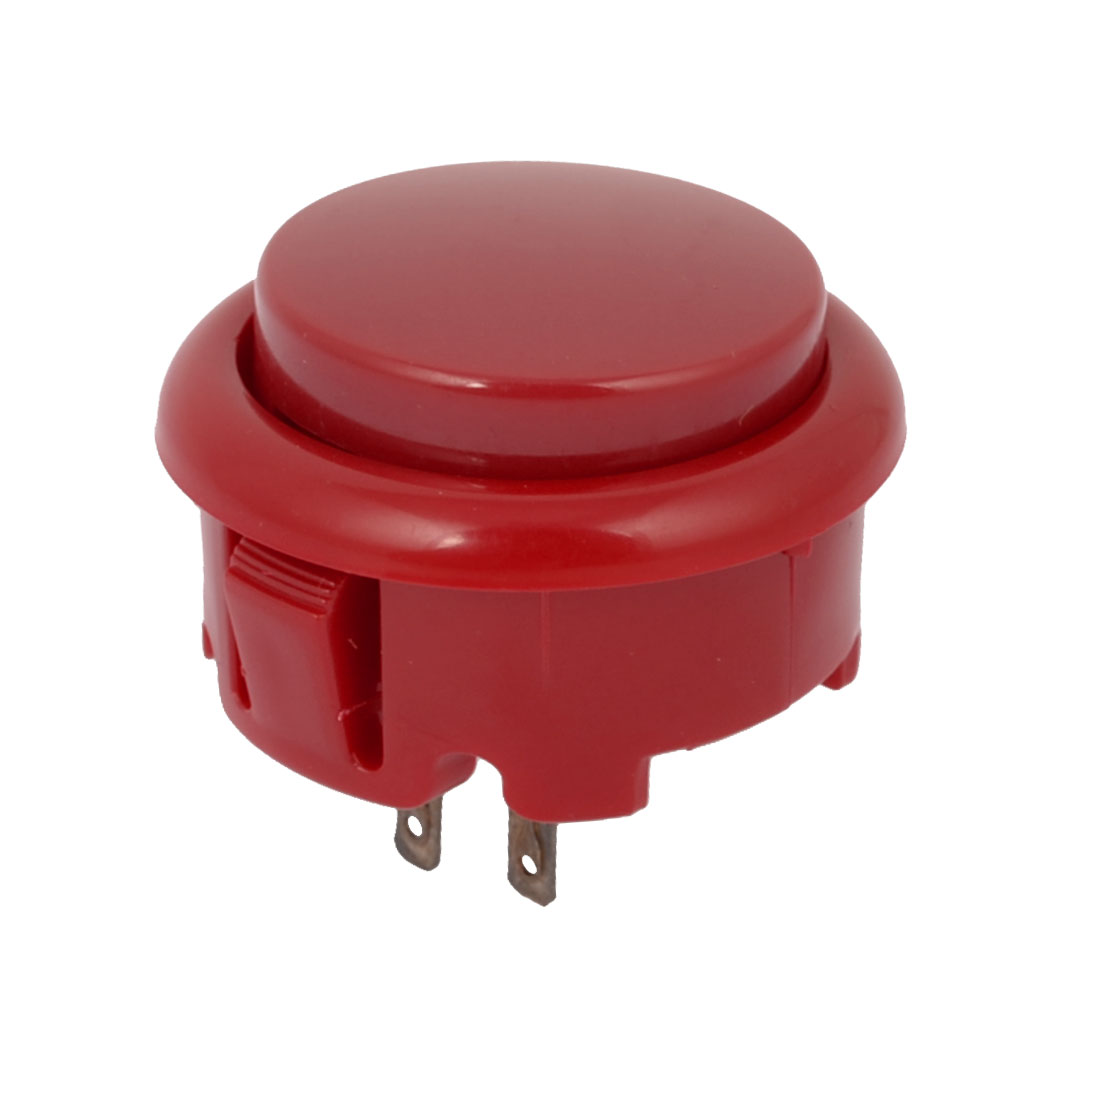 Arcade Games Momentary Push Button 25mm Dia Red AC 250V 1.5A